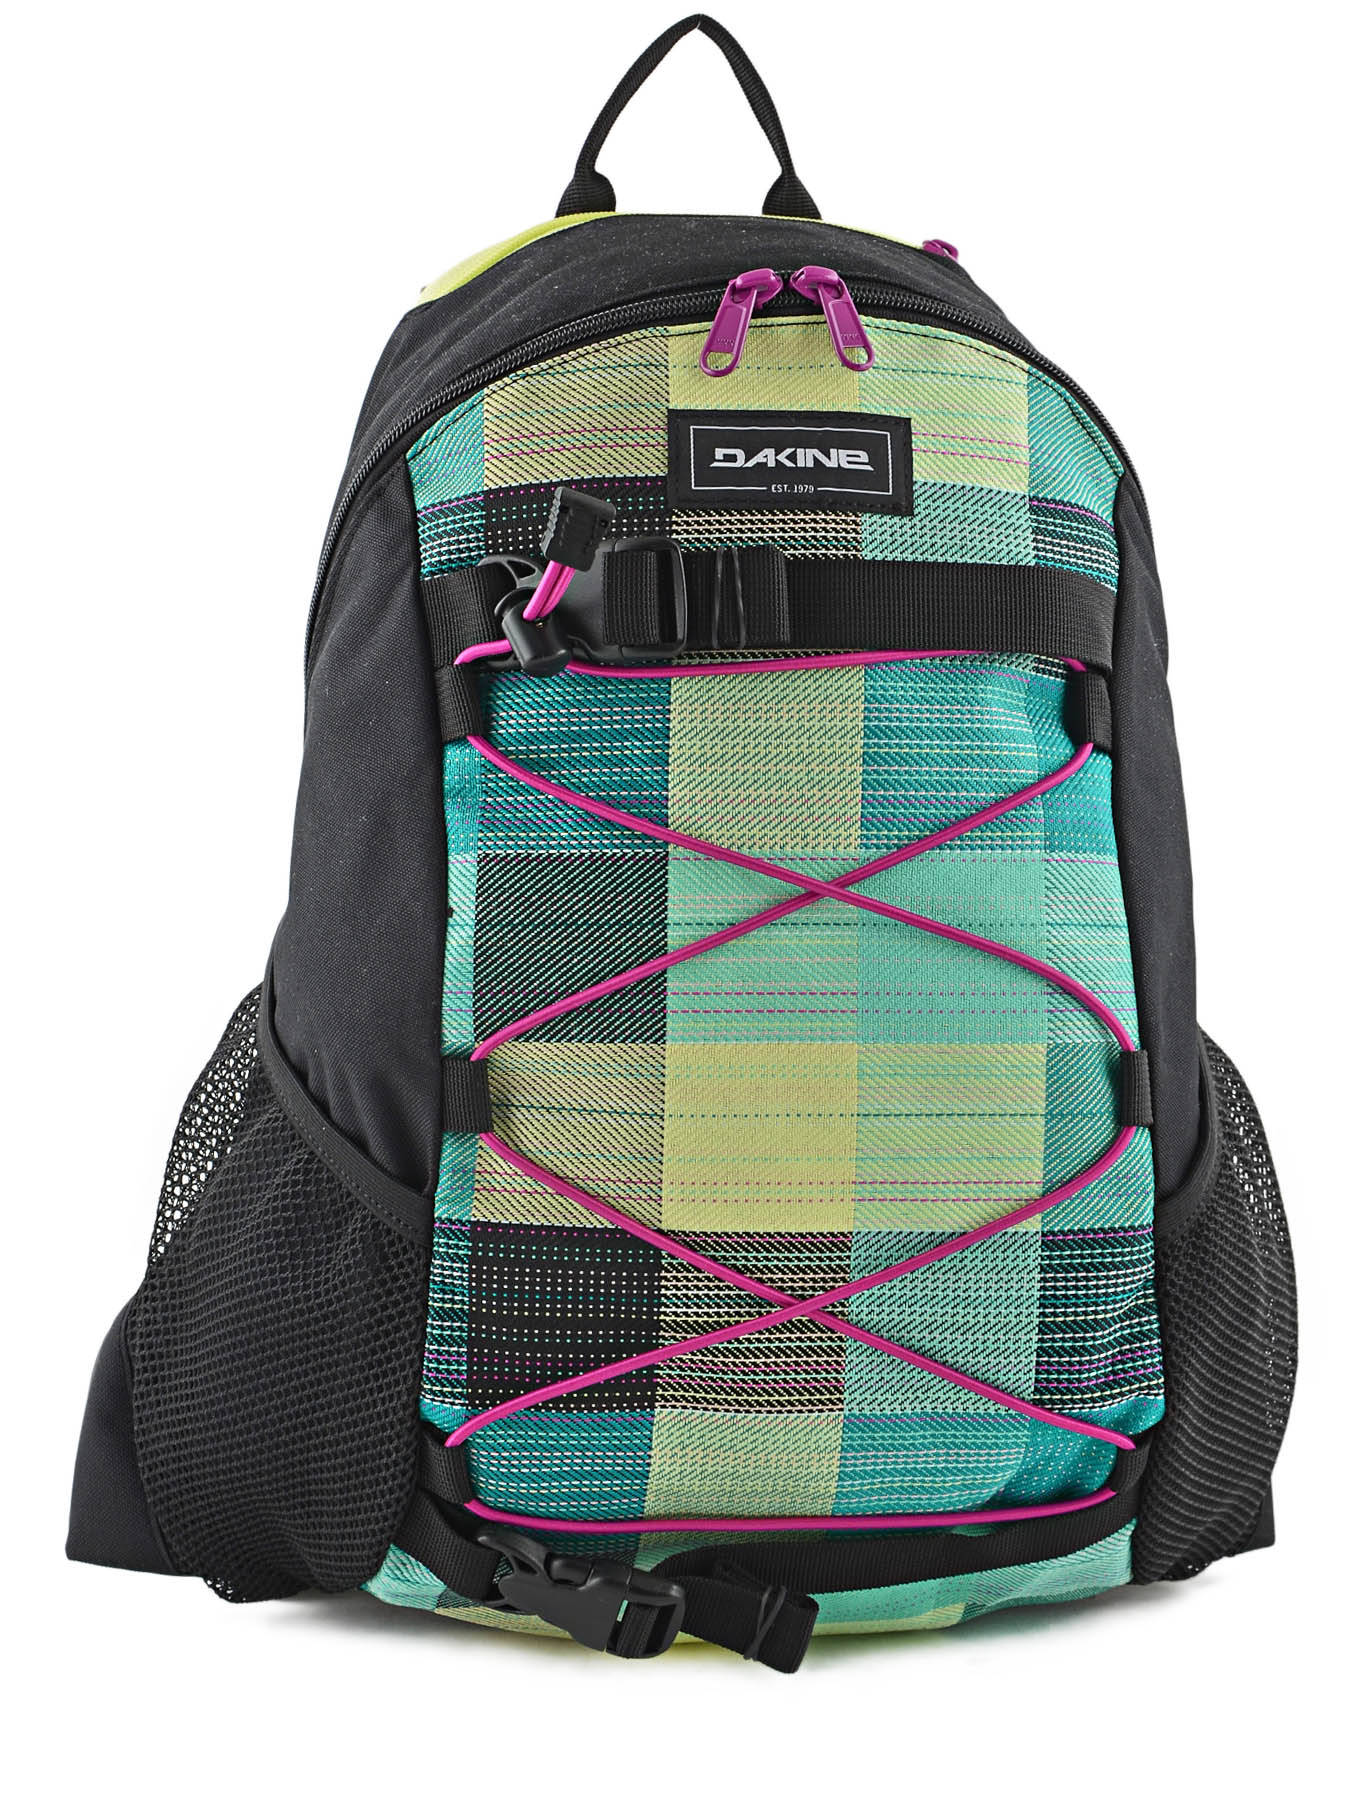 Dakine Backpack Girl packs - Best prices